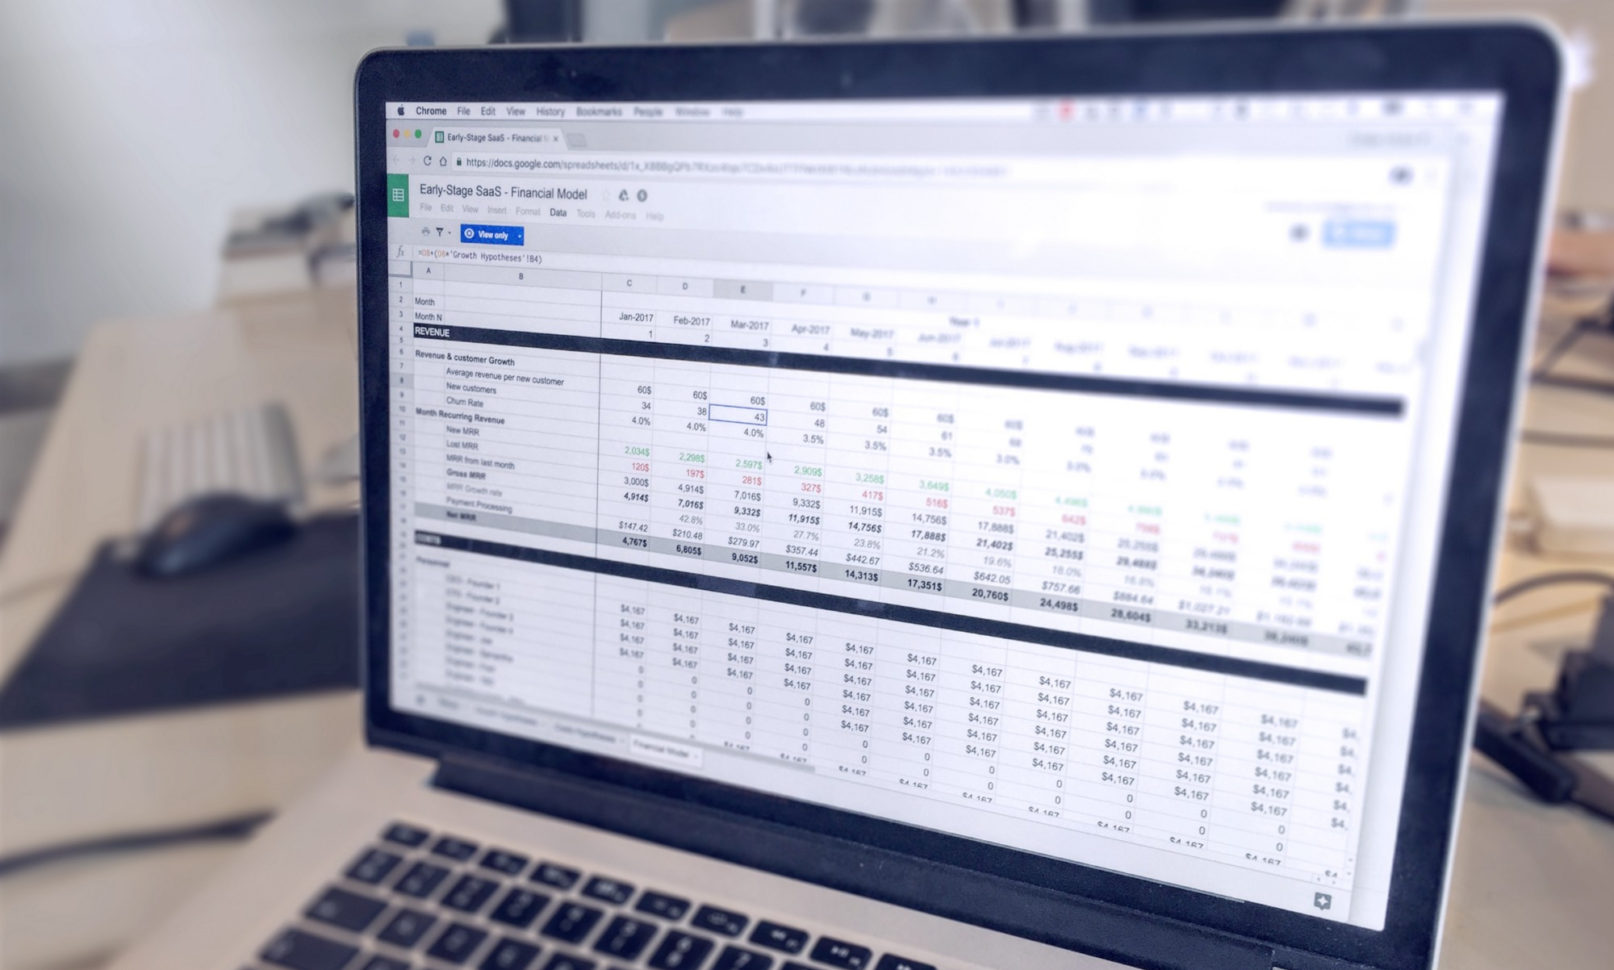 Financial Model Excel Spreadsheet For Saas Financial Model: Simple Template For Earlystage Startups